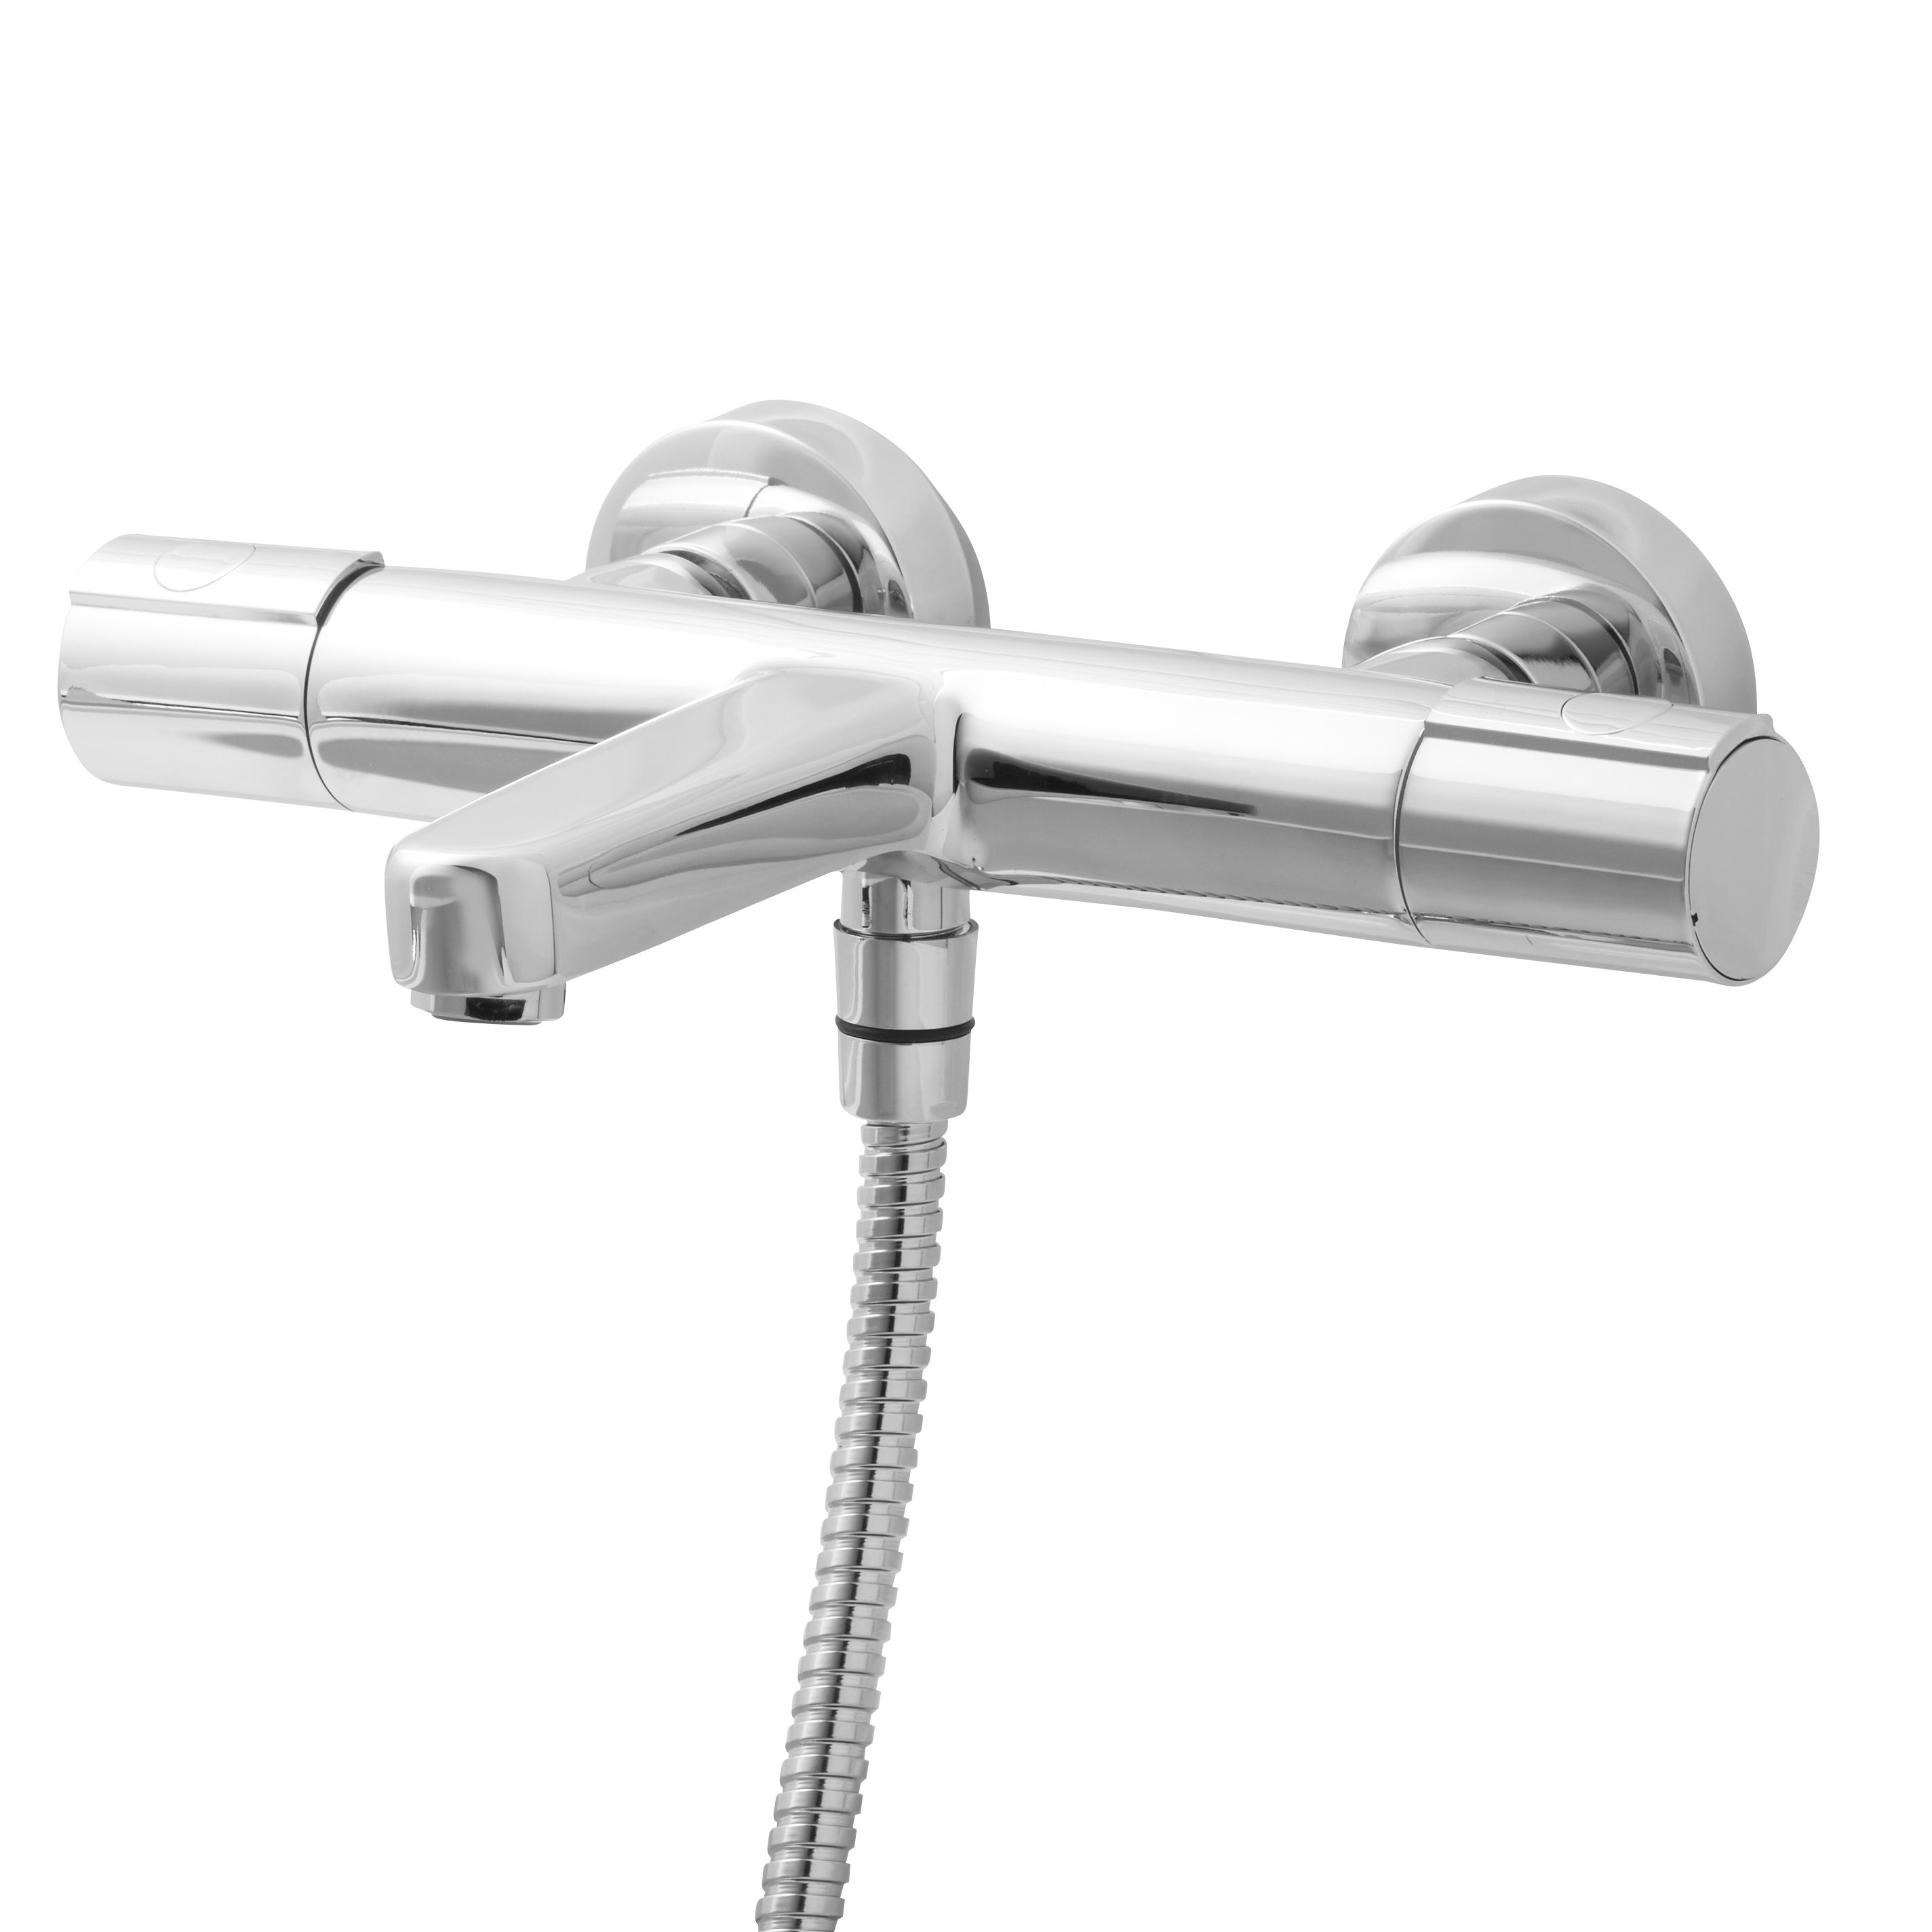 cooke lewis berrow chrome plated thermostatic bath. Black Bedroom Furniture Sets. Home Design Ideas